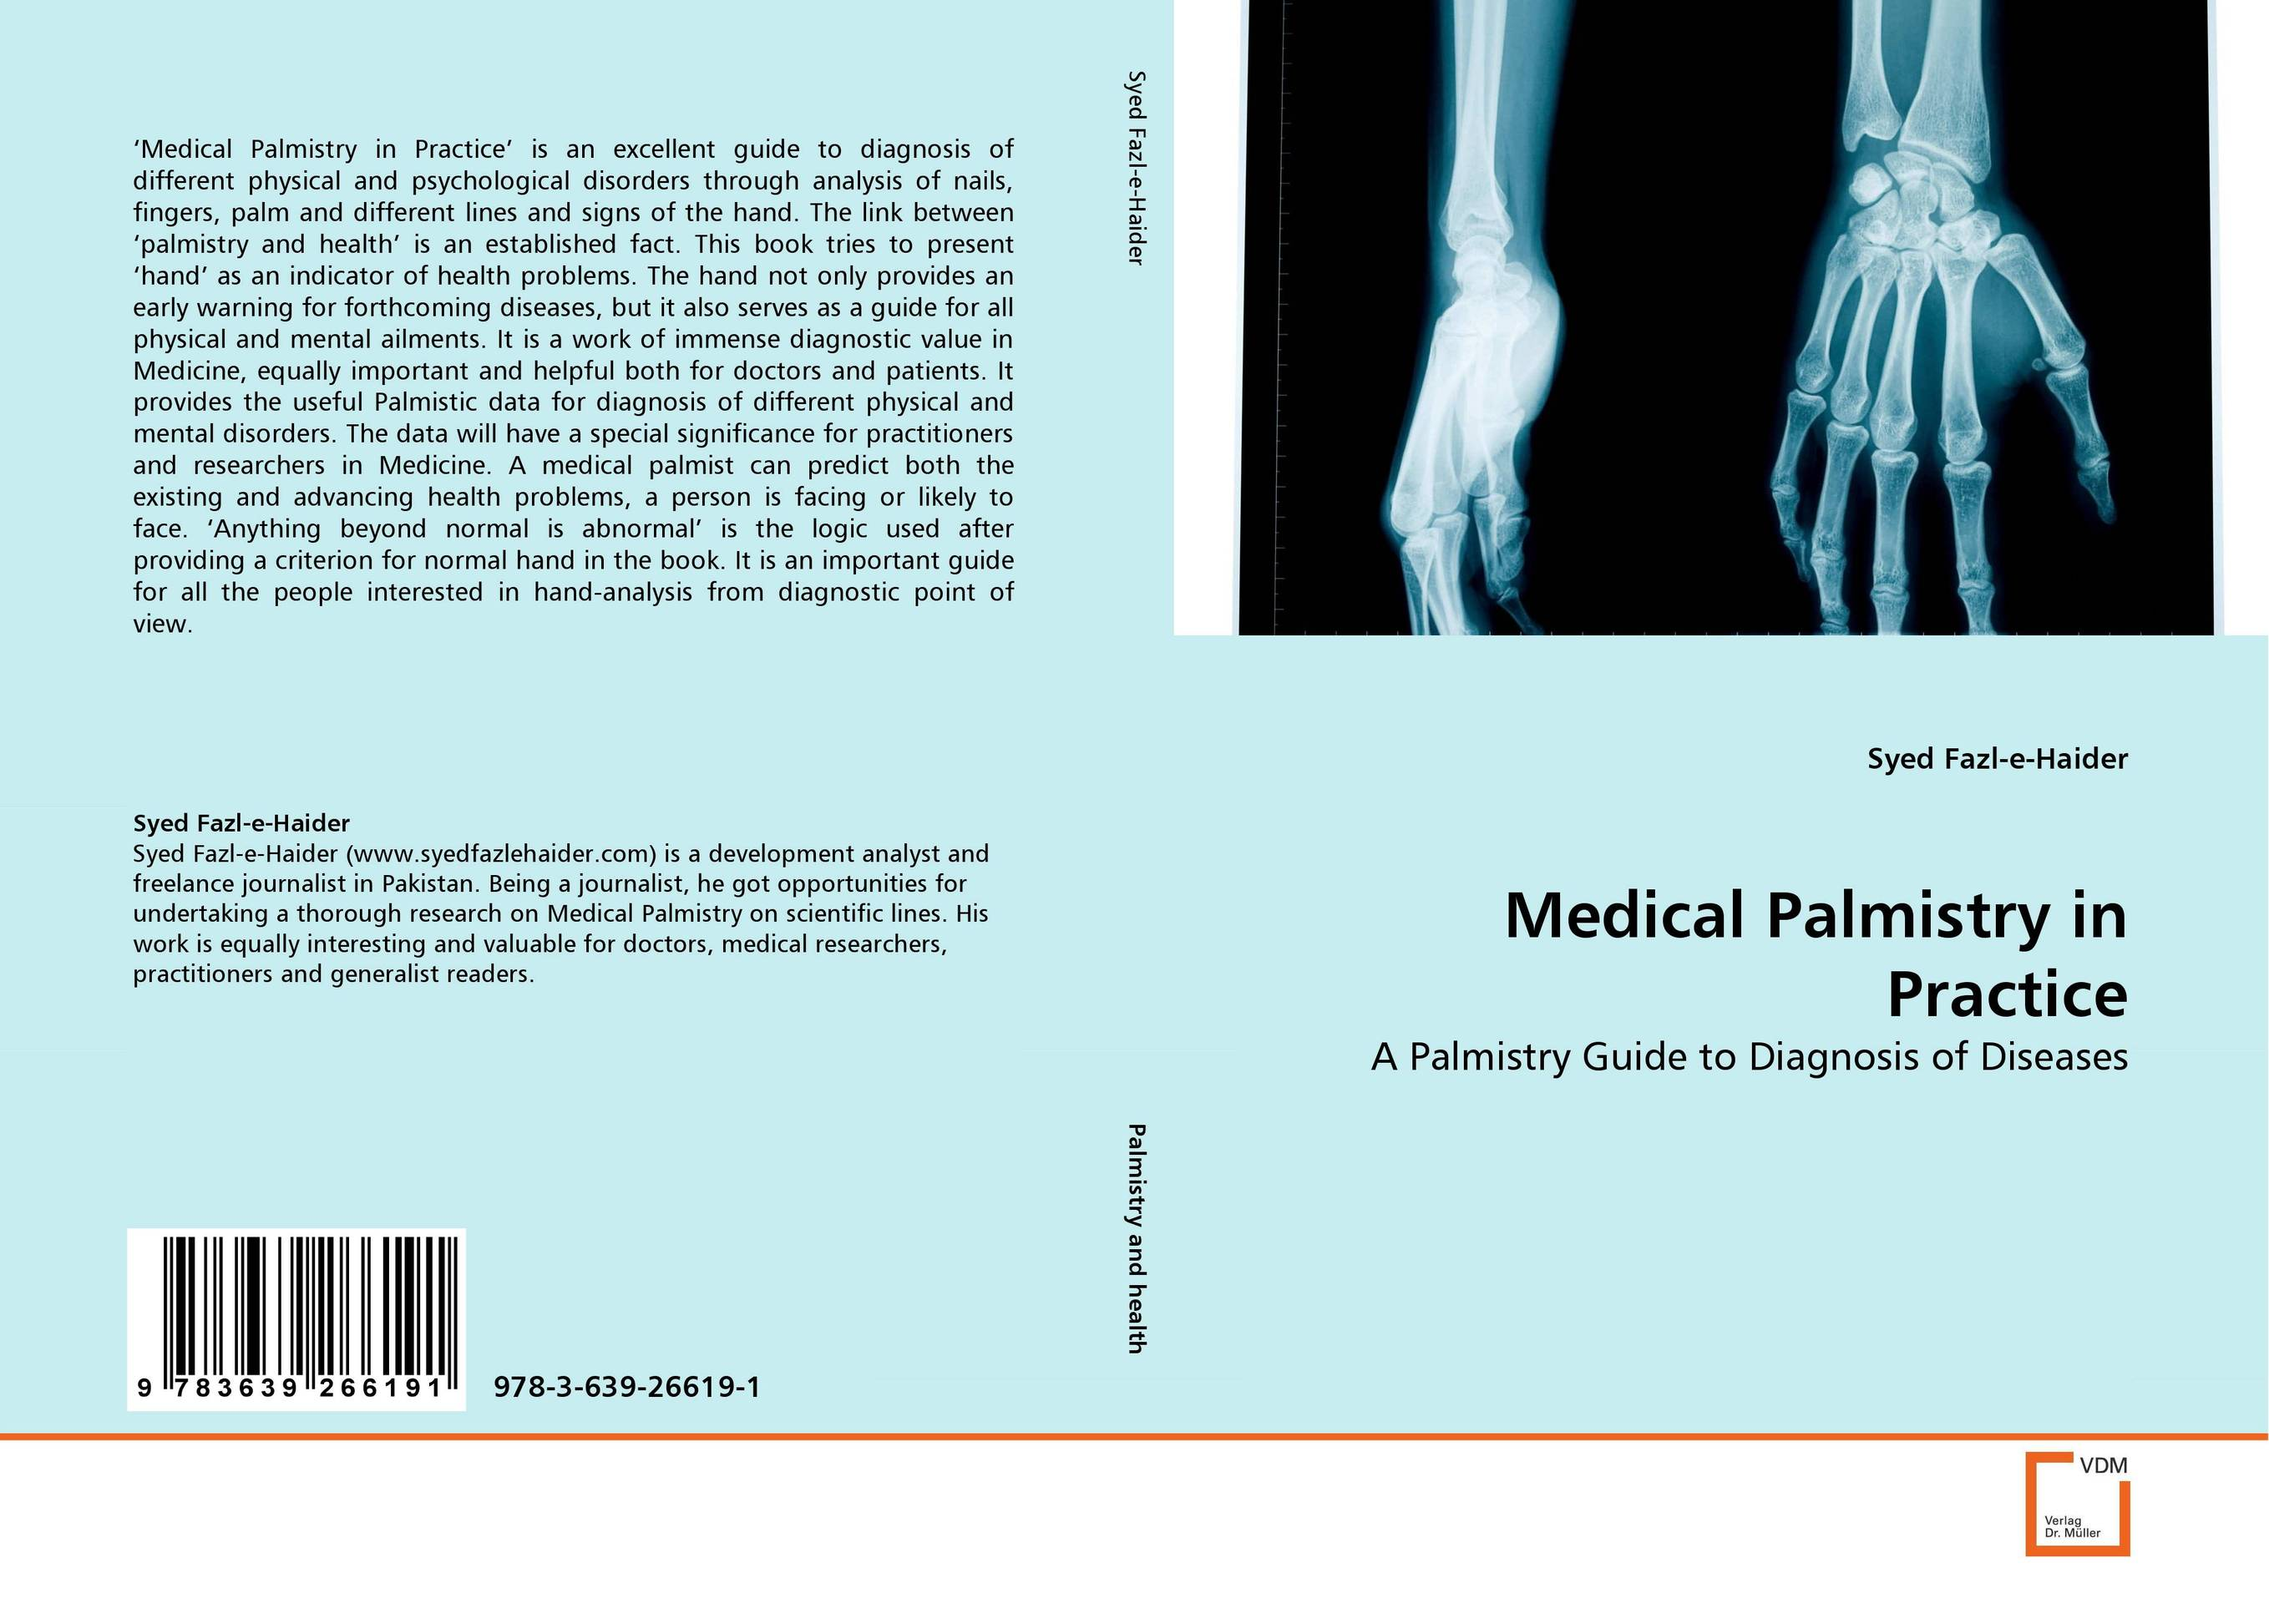 Medical Palmistry in Practice